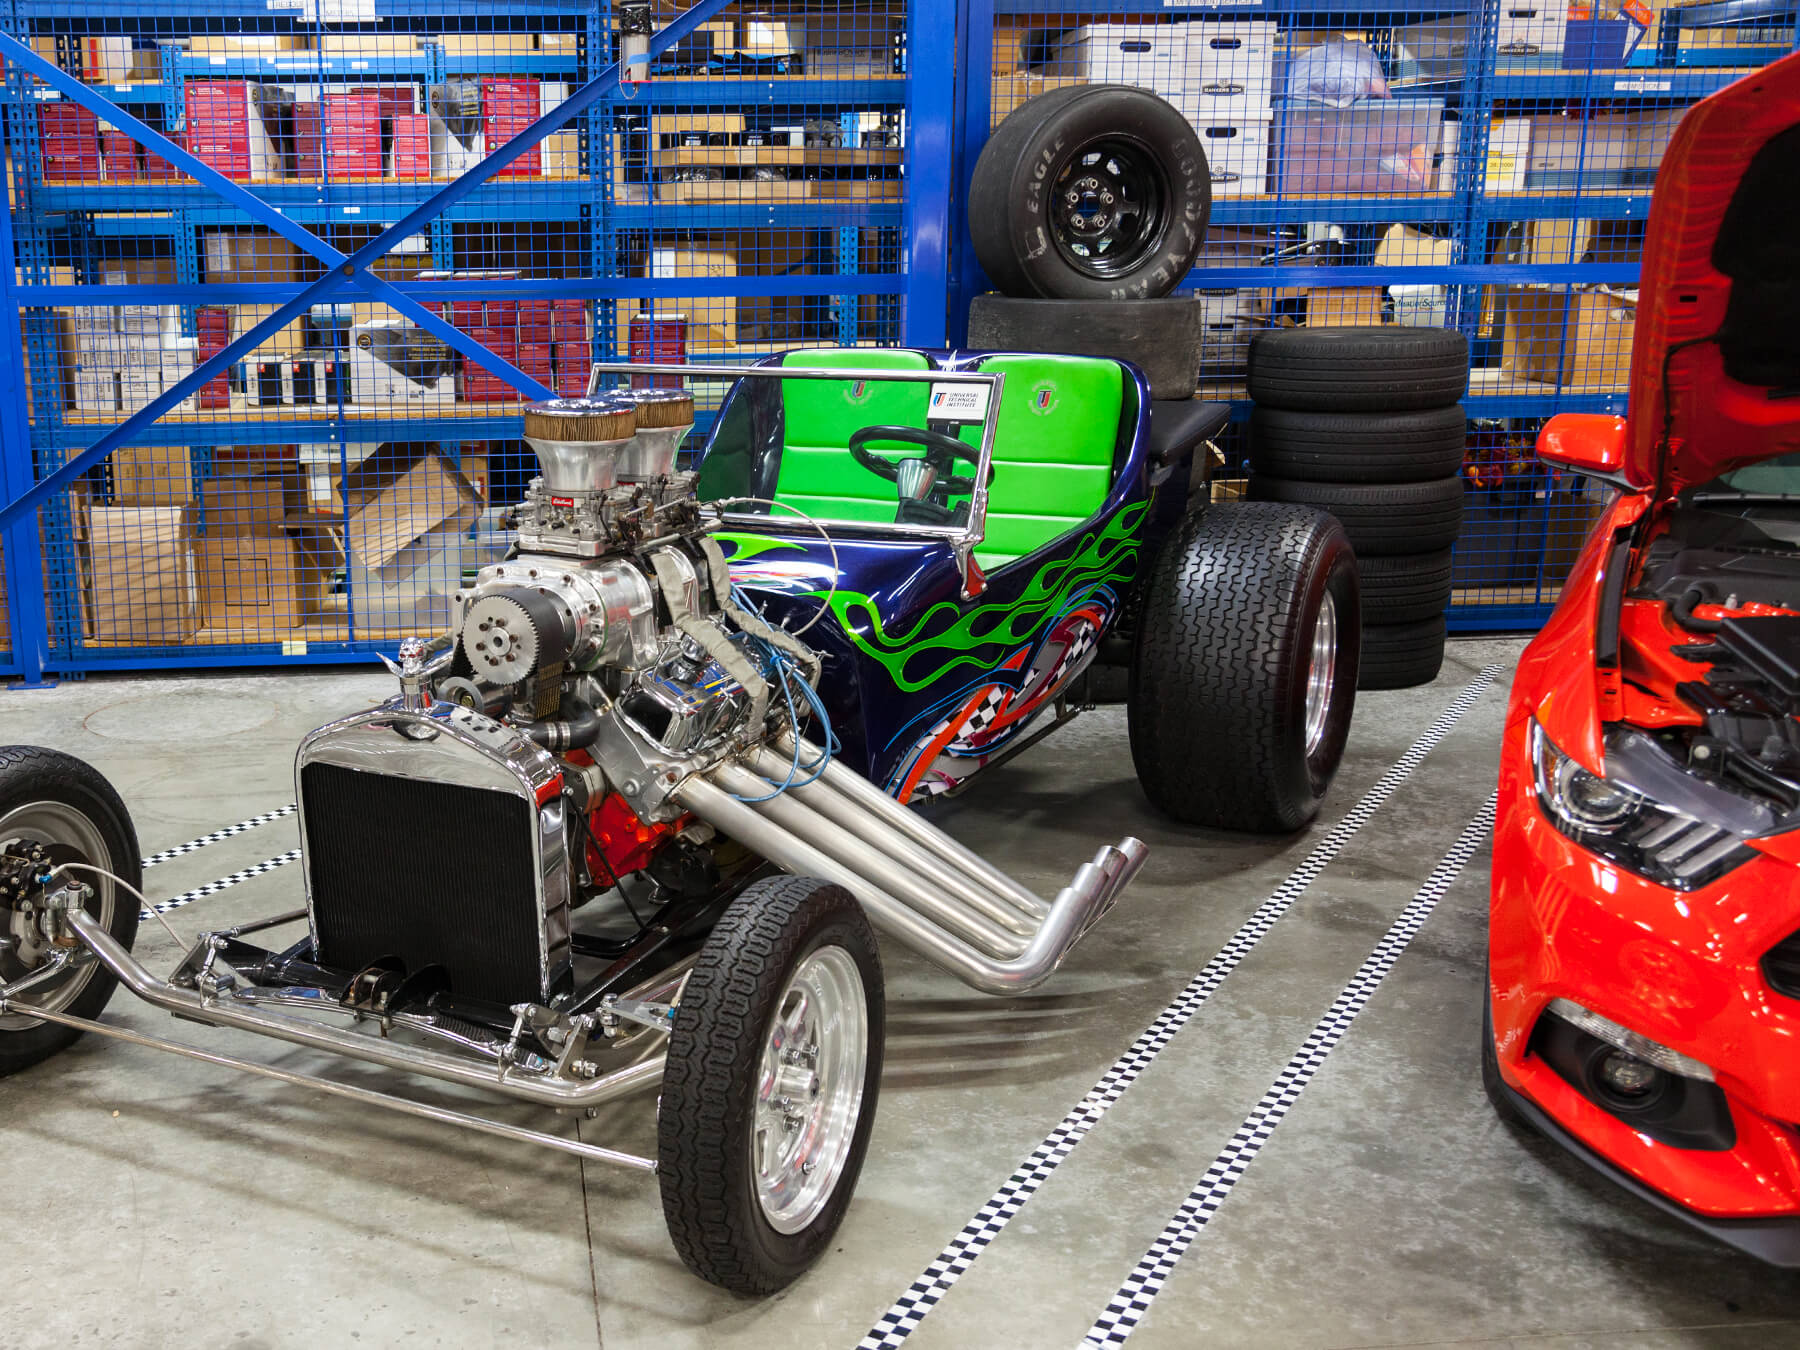 Photo of a Blue T-Bucket hot rod with green flames in the Power Performance lab at the Exton campus